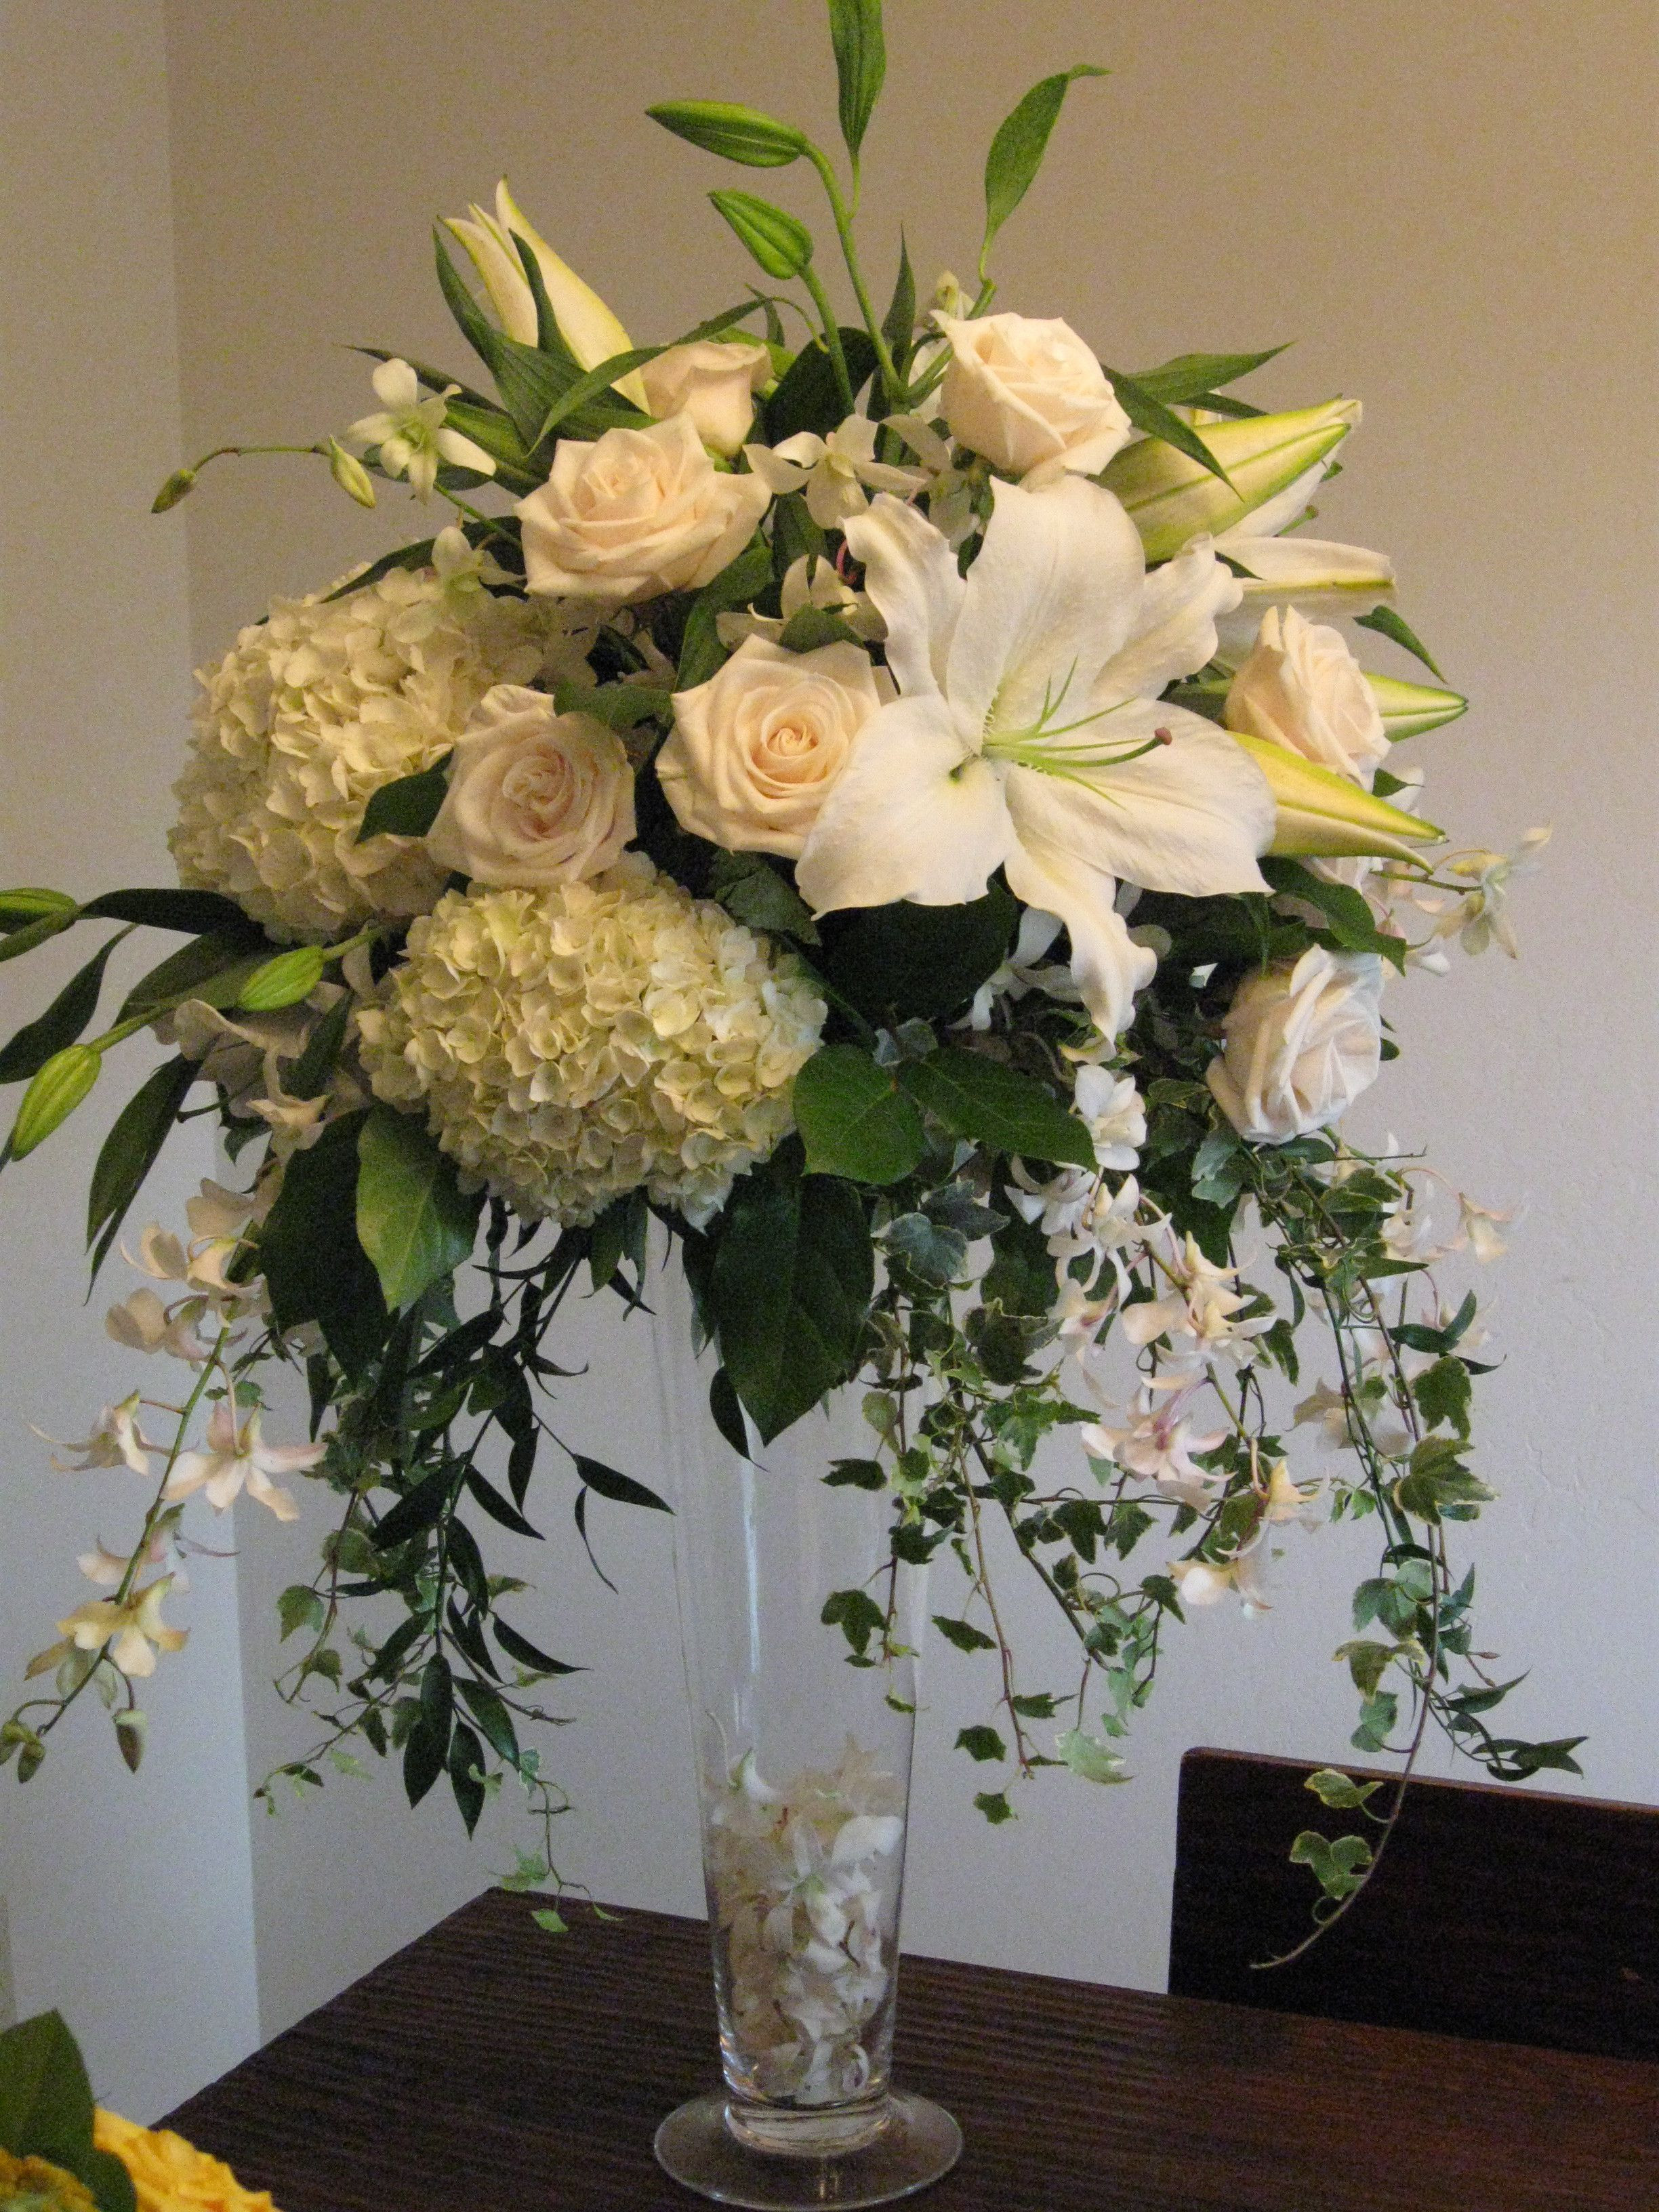 arranging flowers in a round vase of centerpiece white roses hydrangea orchids tall vendela the for centerpiece white roses hydrangea orchids tall vendela the blue orchid dendrobium ivy casa